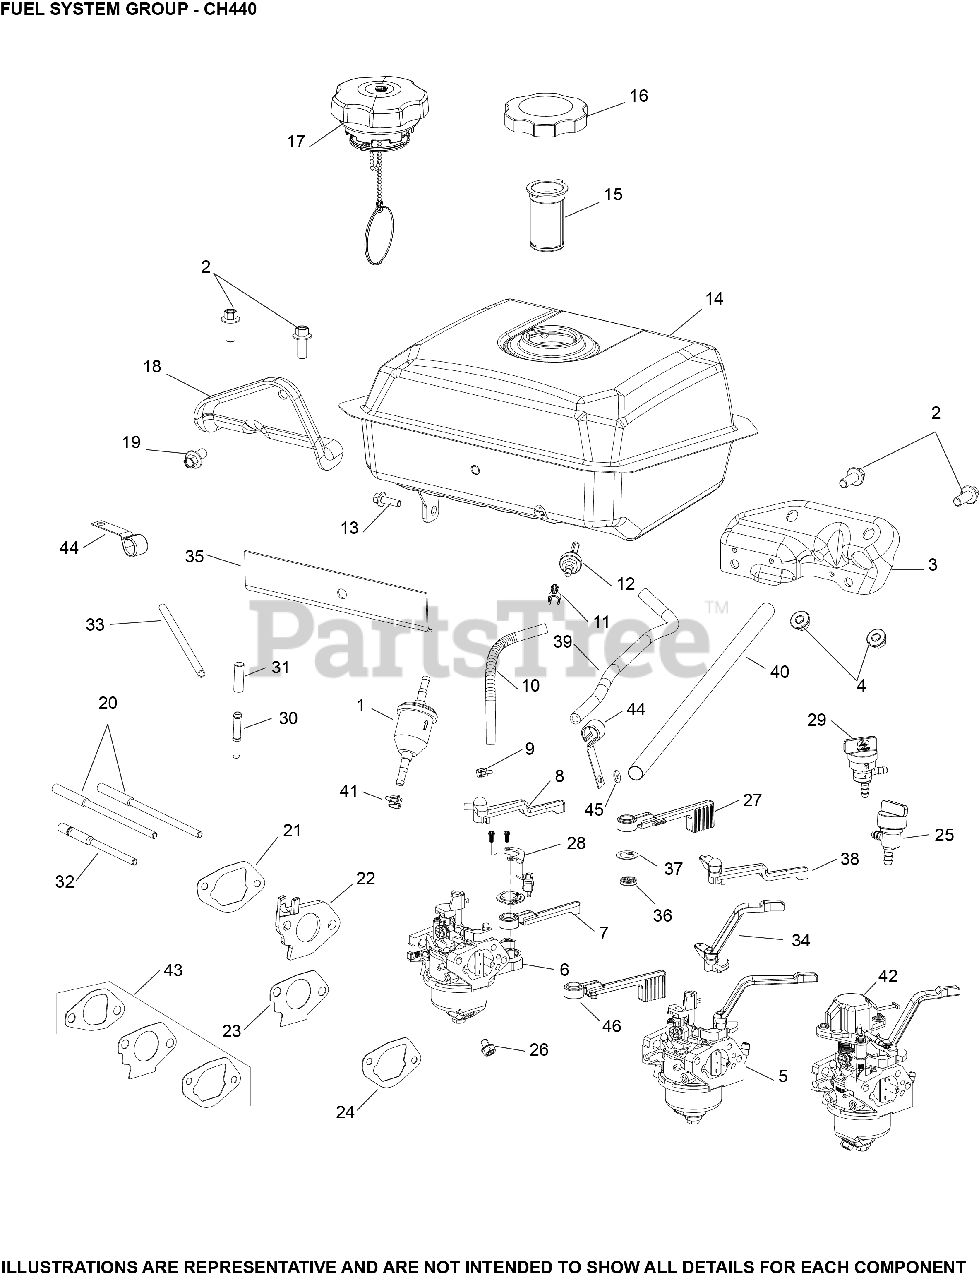 Kohler Ch440 3209 Kohler Command Pro Engine Made For Toro 14hp 10 5kw Fuel System Parts Lookup With Diagrams Partstree